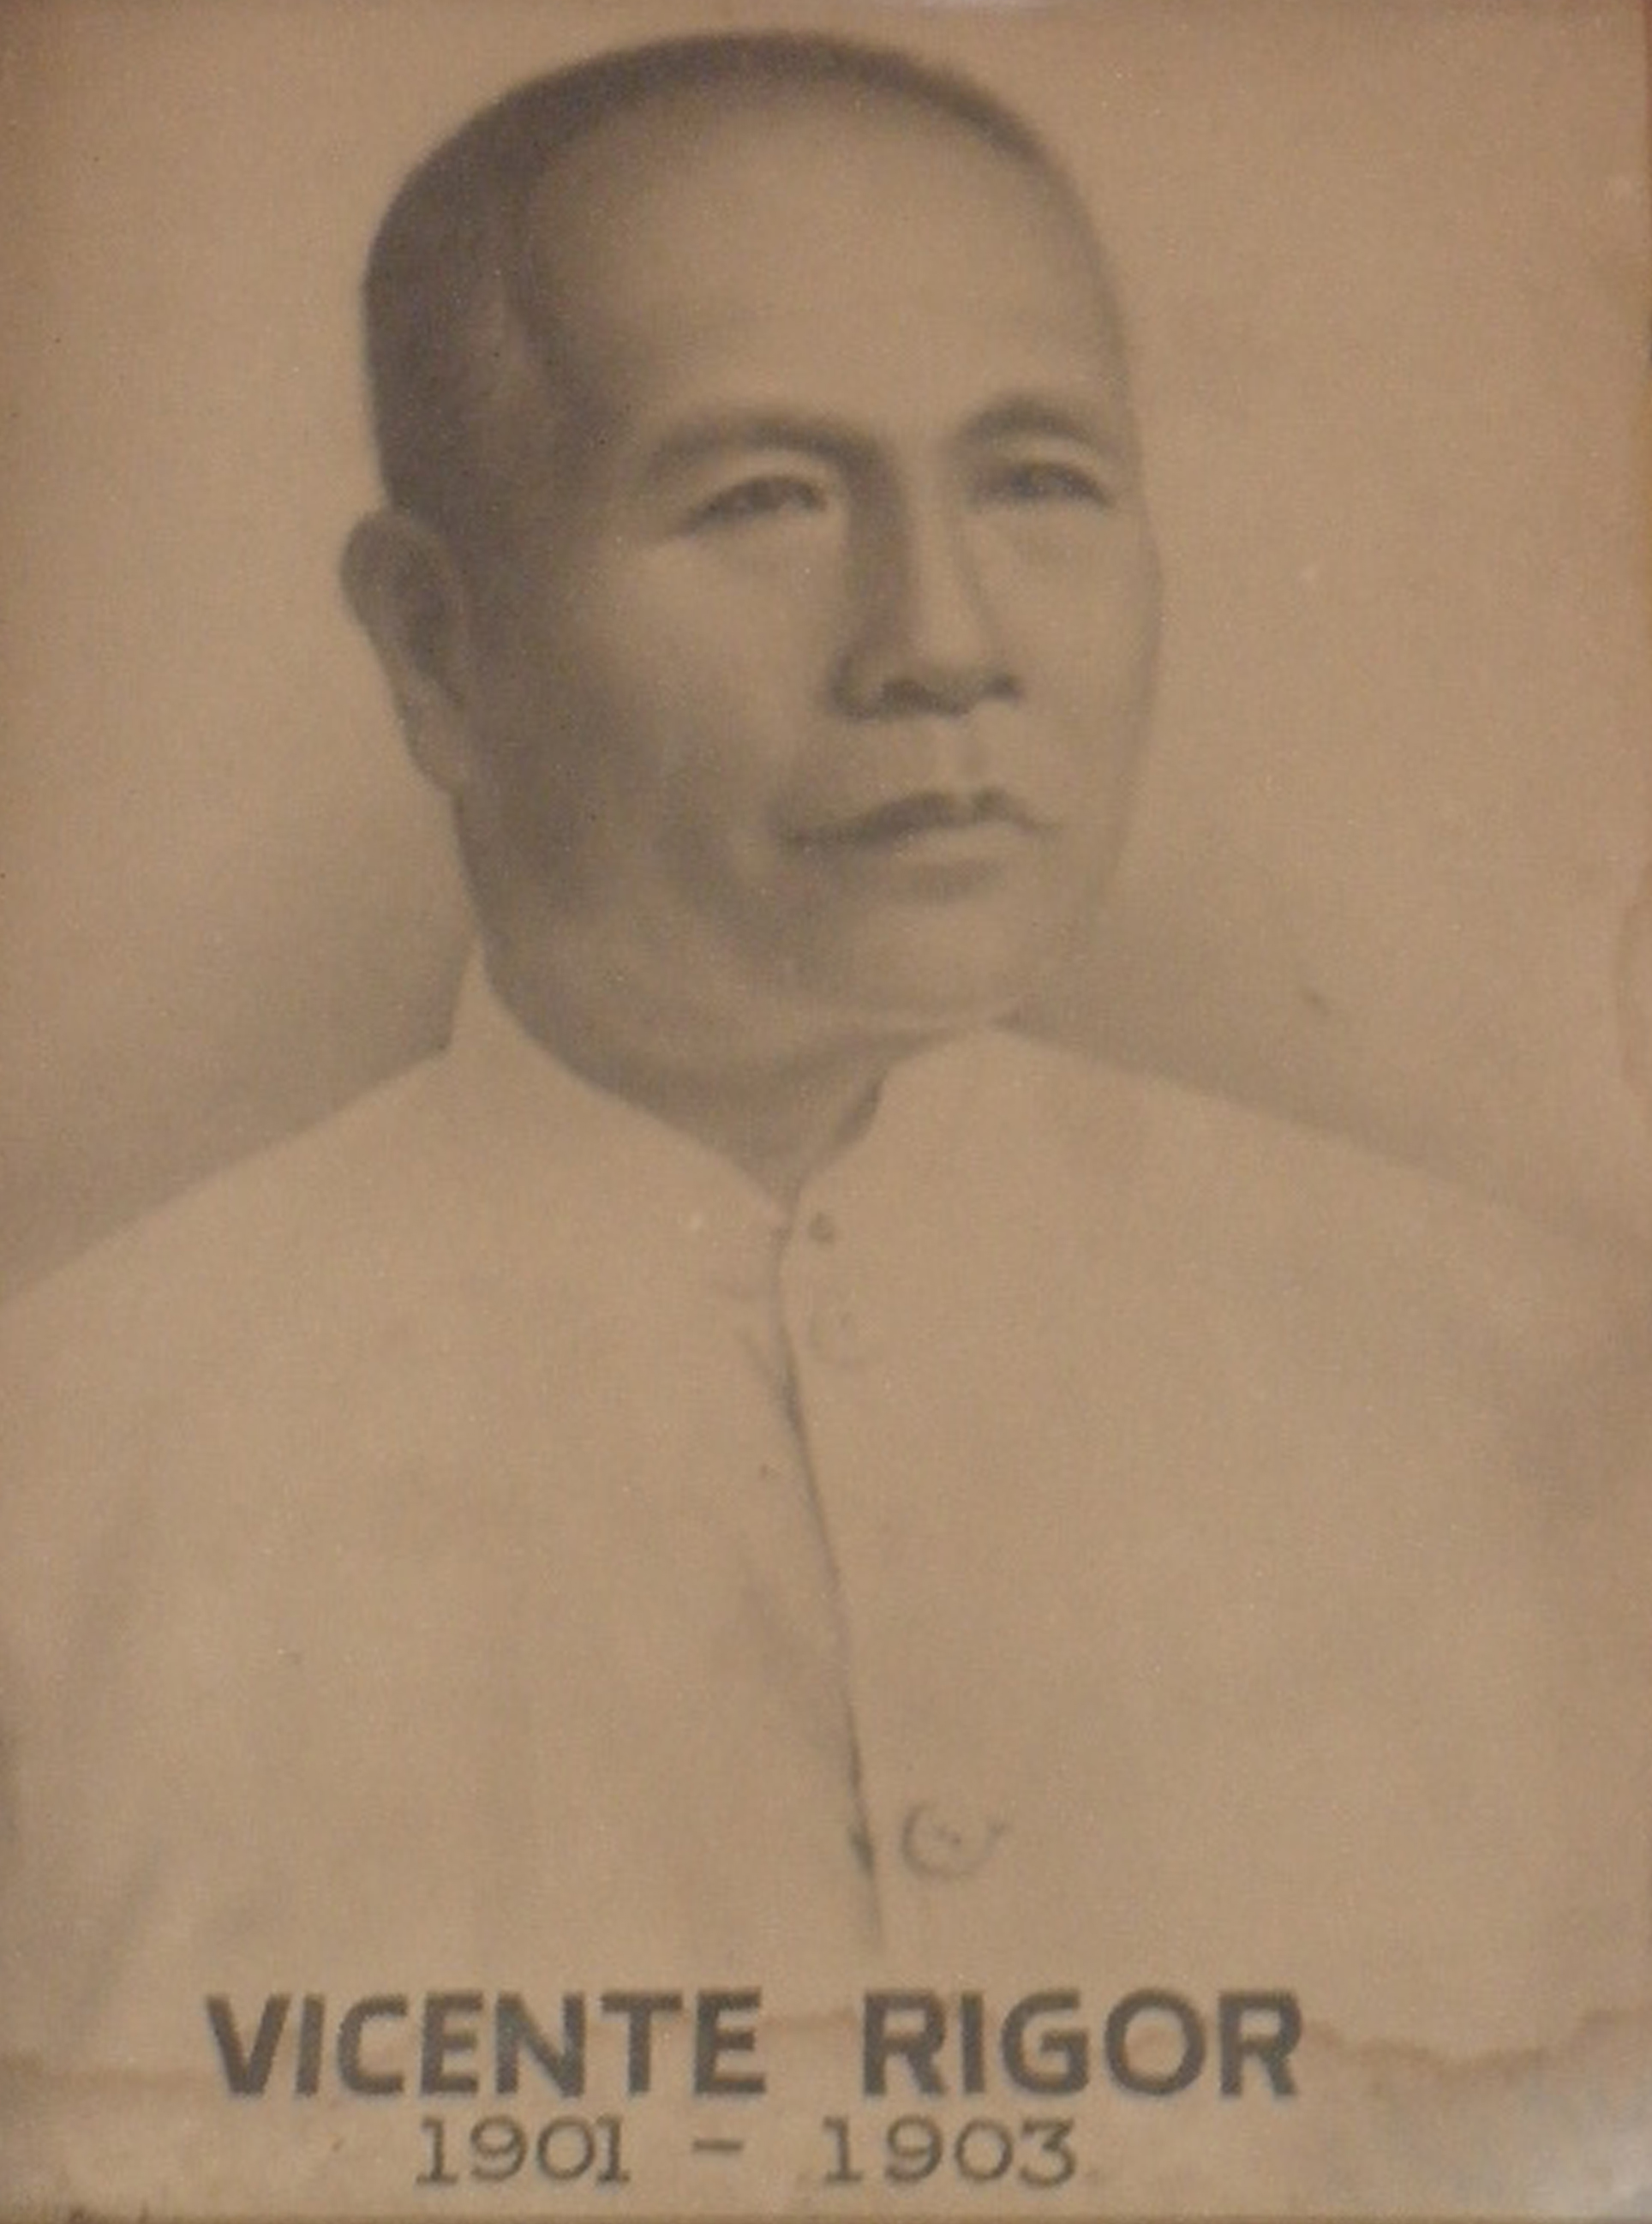 Mayor Vicente Rigor (1901-1903)